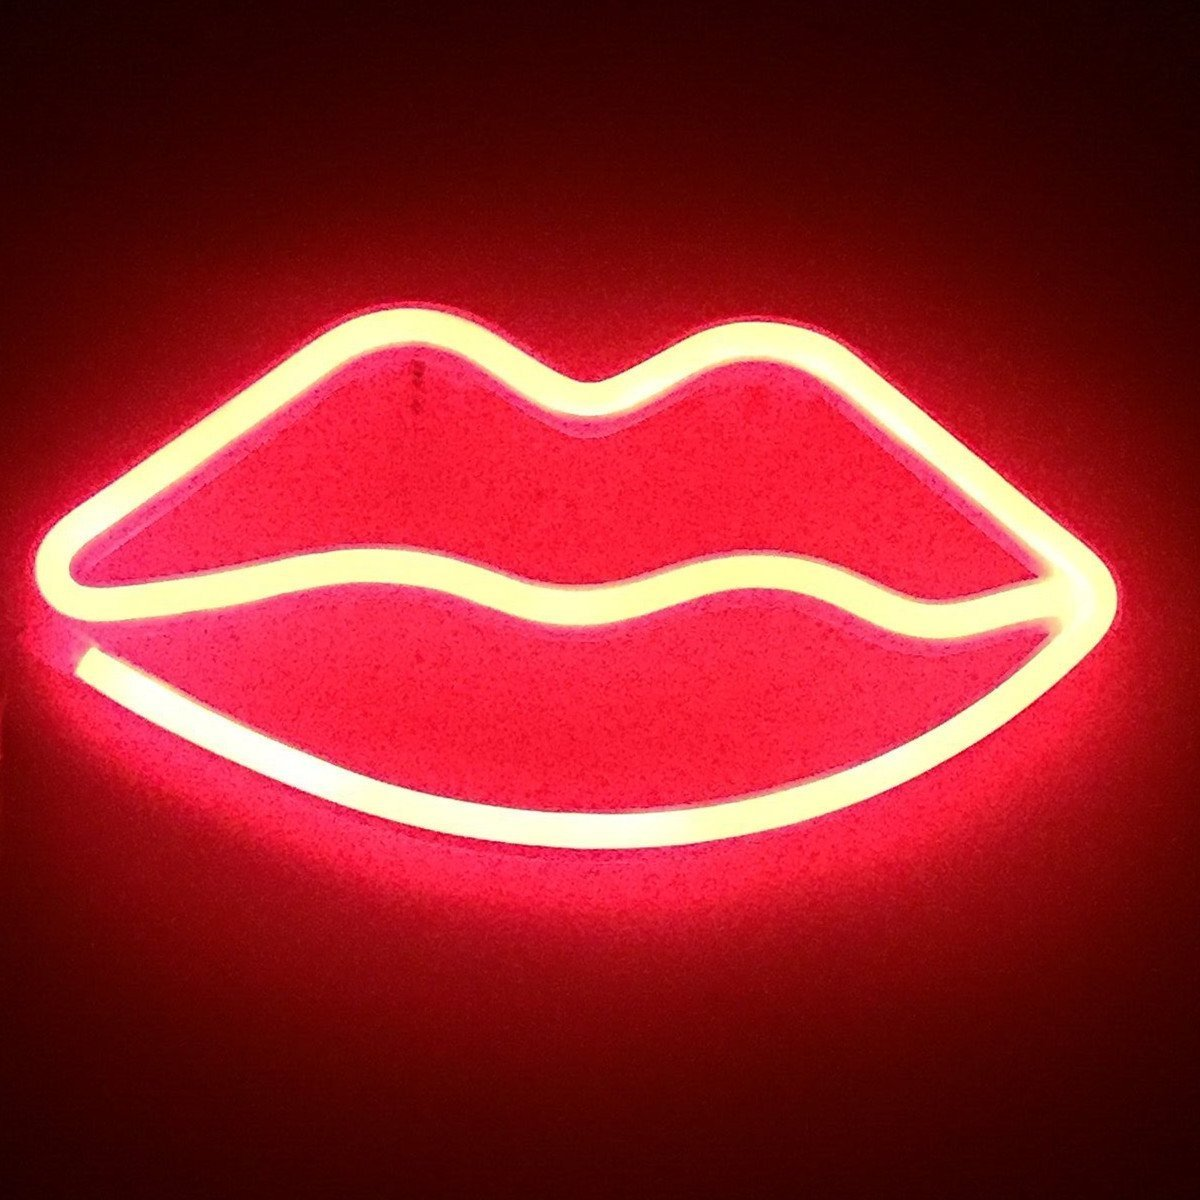 Led Neon Cactus Sign Love Sign Art Decorative Lights Wall Decor Home Party Decoration Kids Room Living Room LED Decorative Neon Lights (Lips